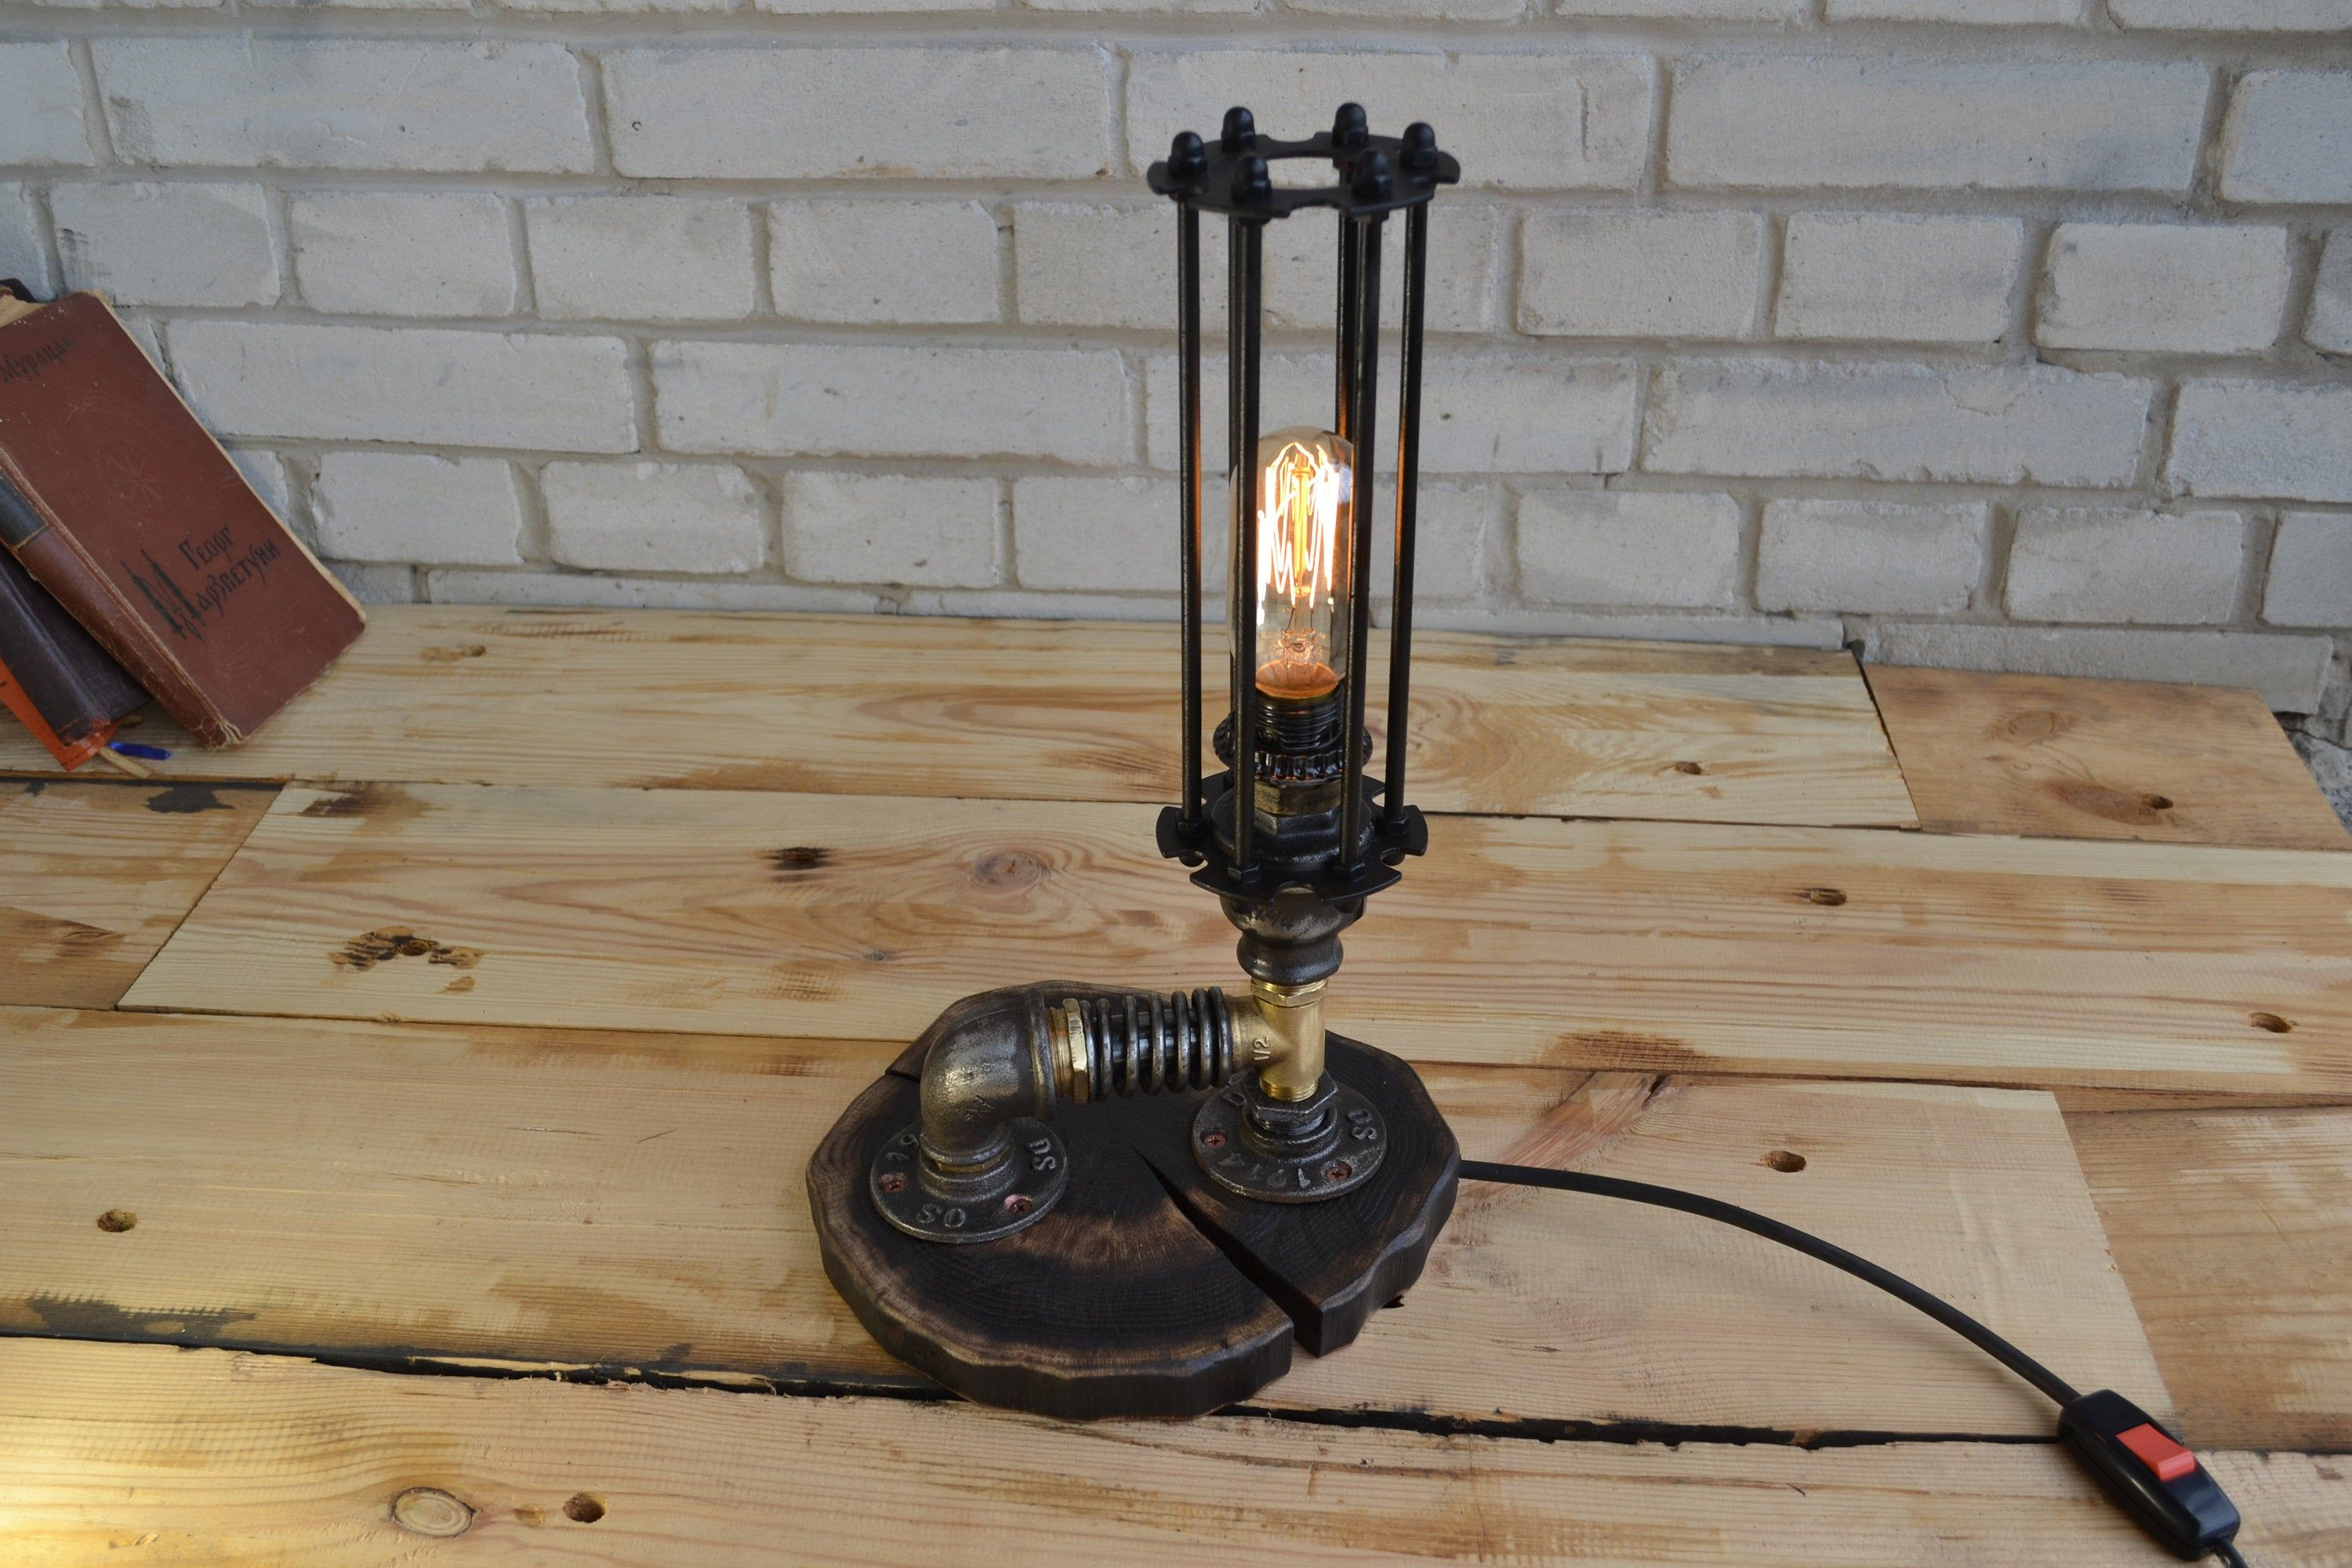 Wooden Lamp In Steampunk Style Table Lamp Gift For Men And Women Rustic Style For Apartment House Bedside Nigh Steampunk Table Lamp Lamp Bedside Night Lamps